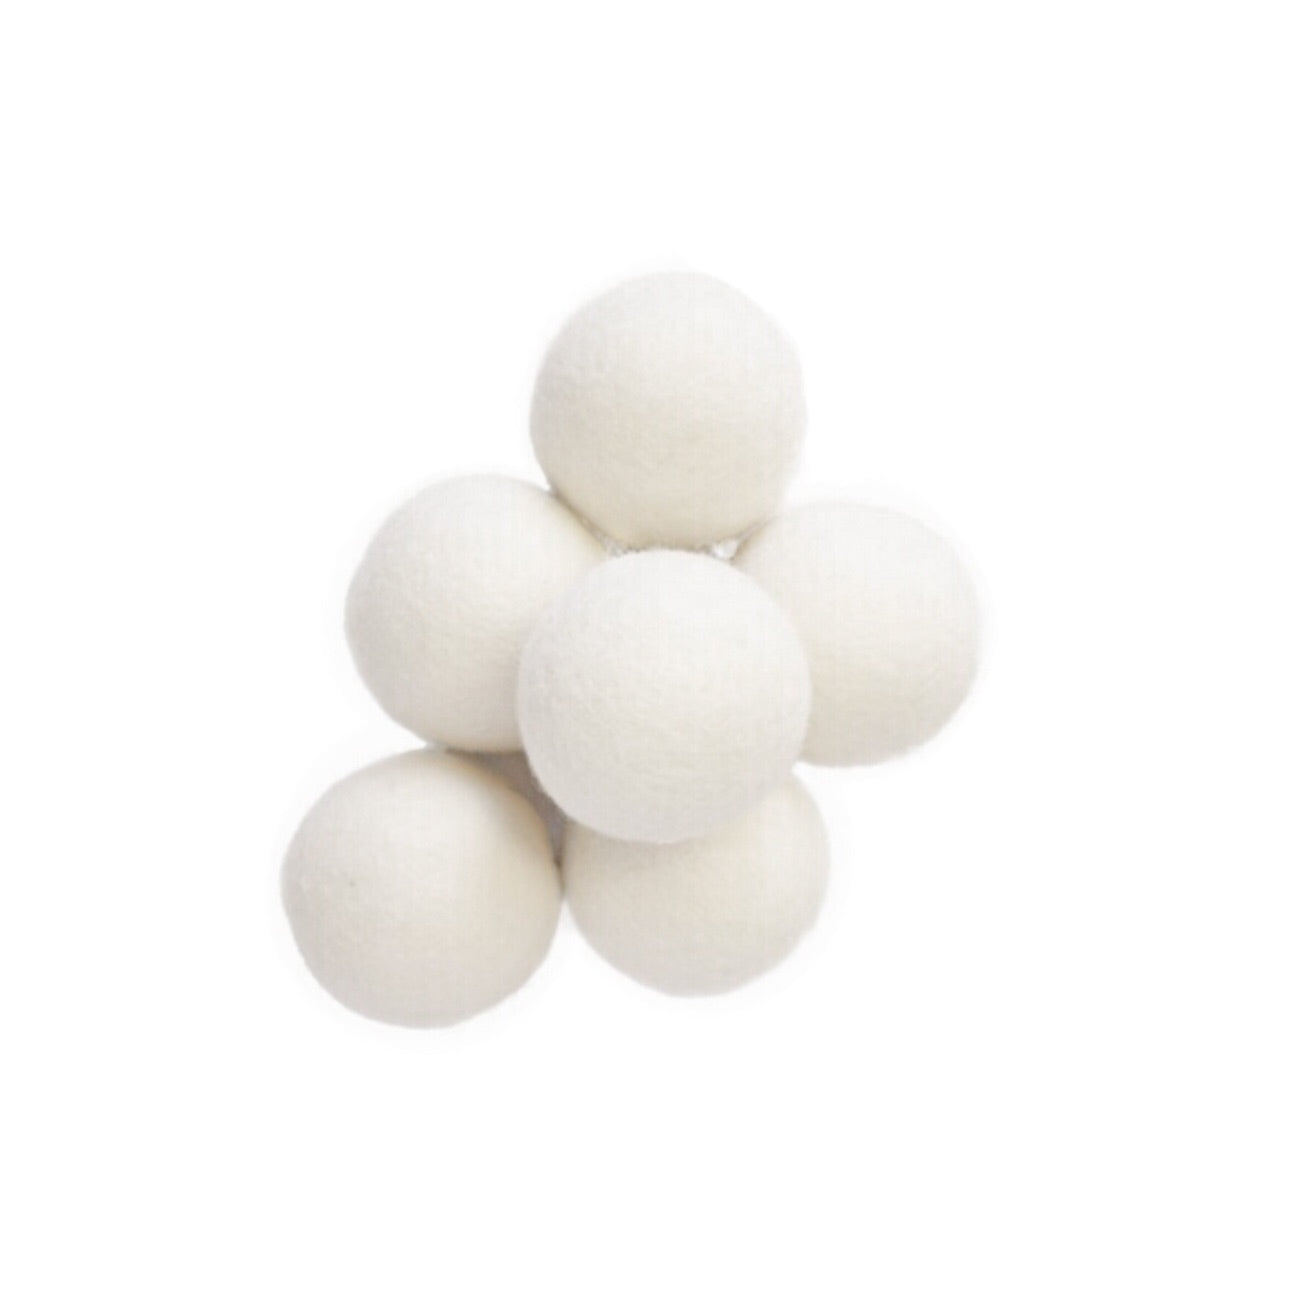 100% Organic & Local Wool Dryer Balls